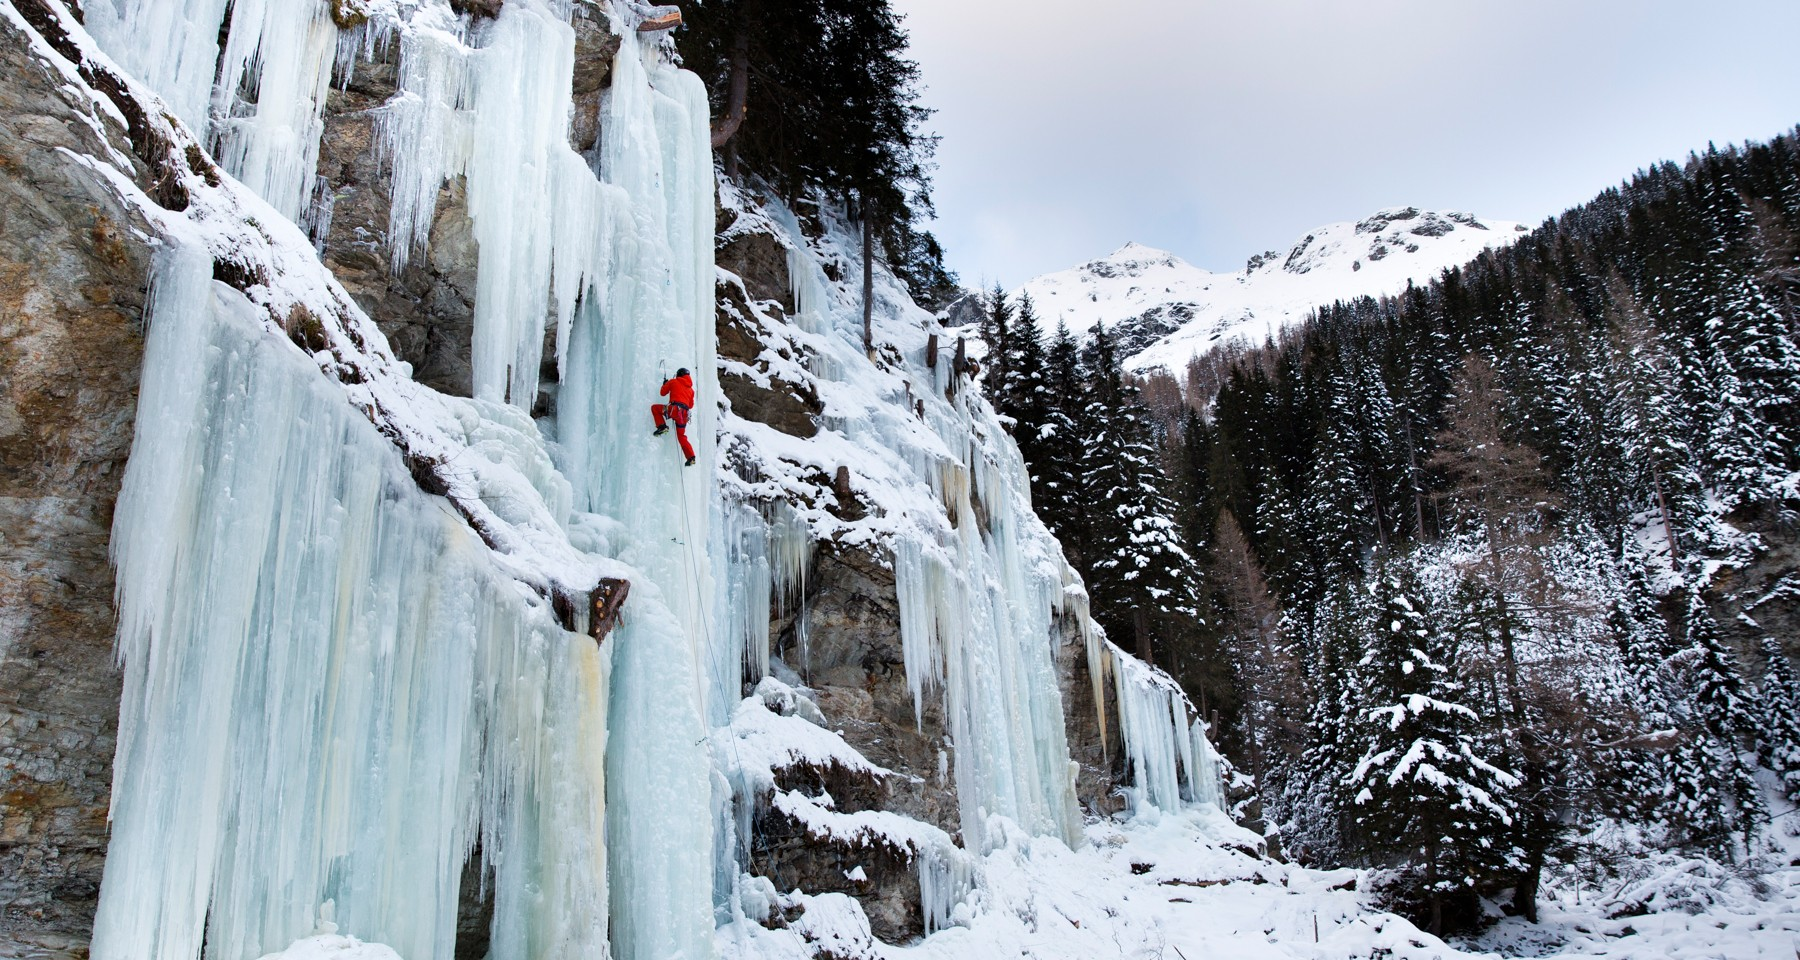 Ice climbing drop in